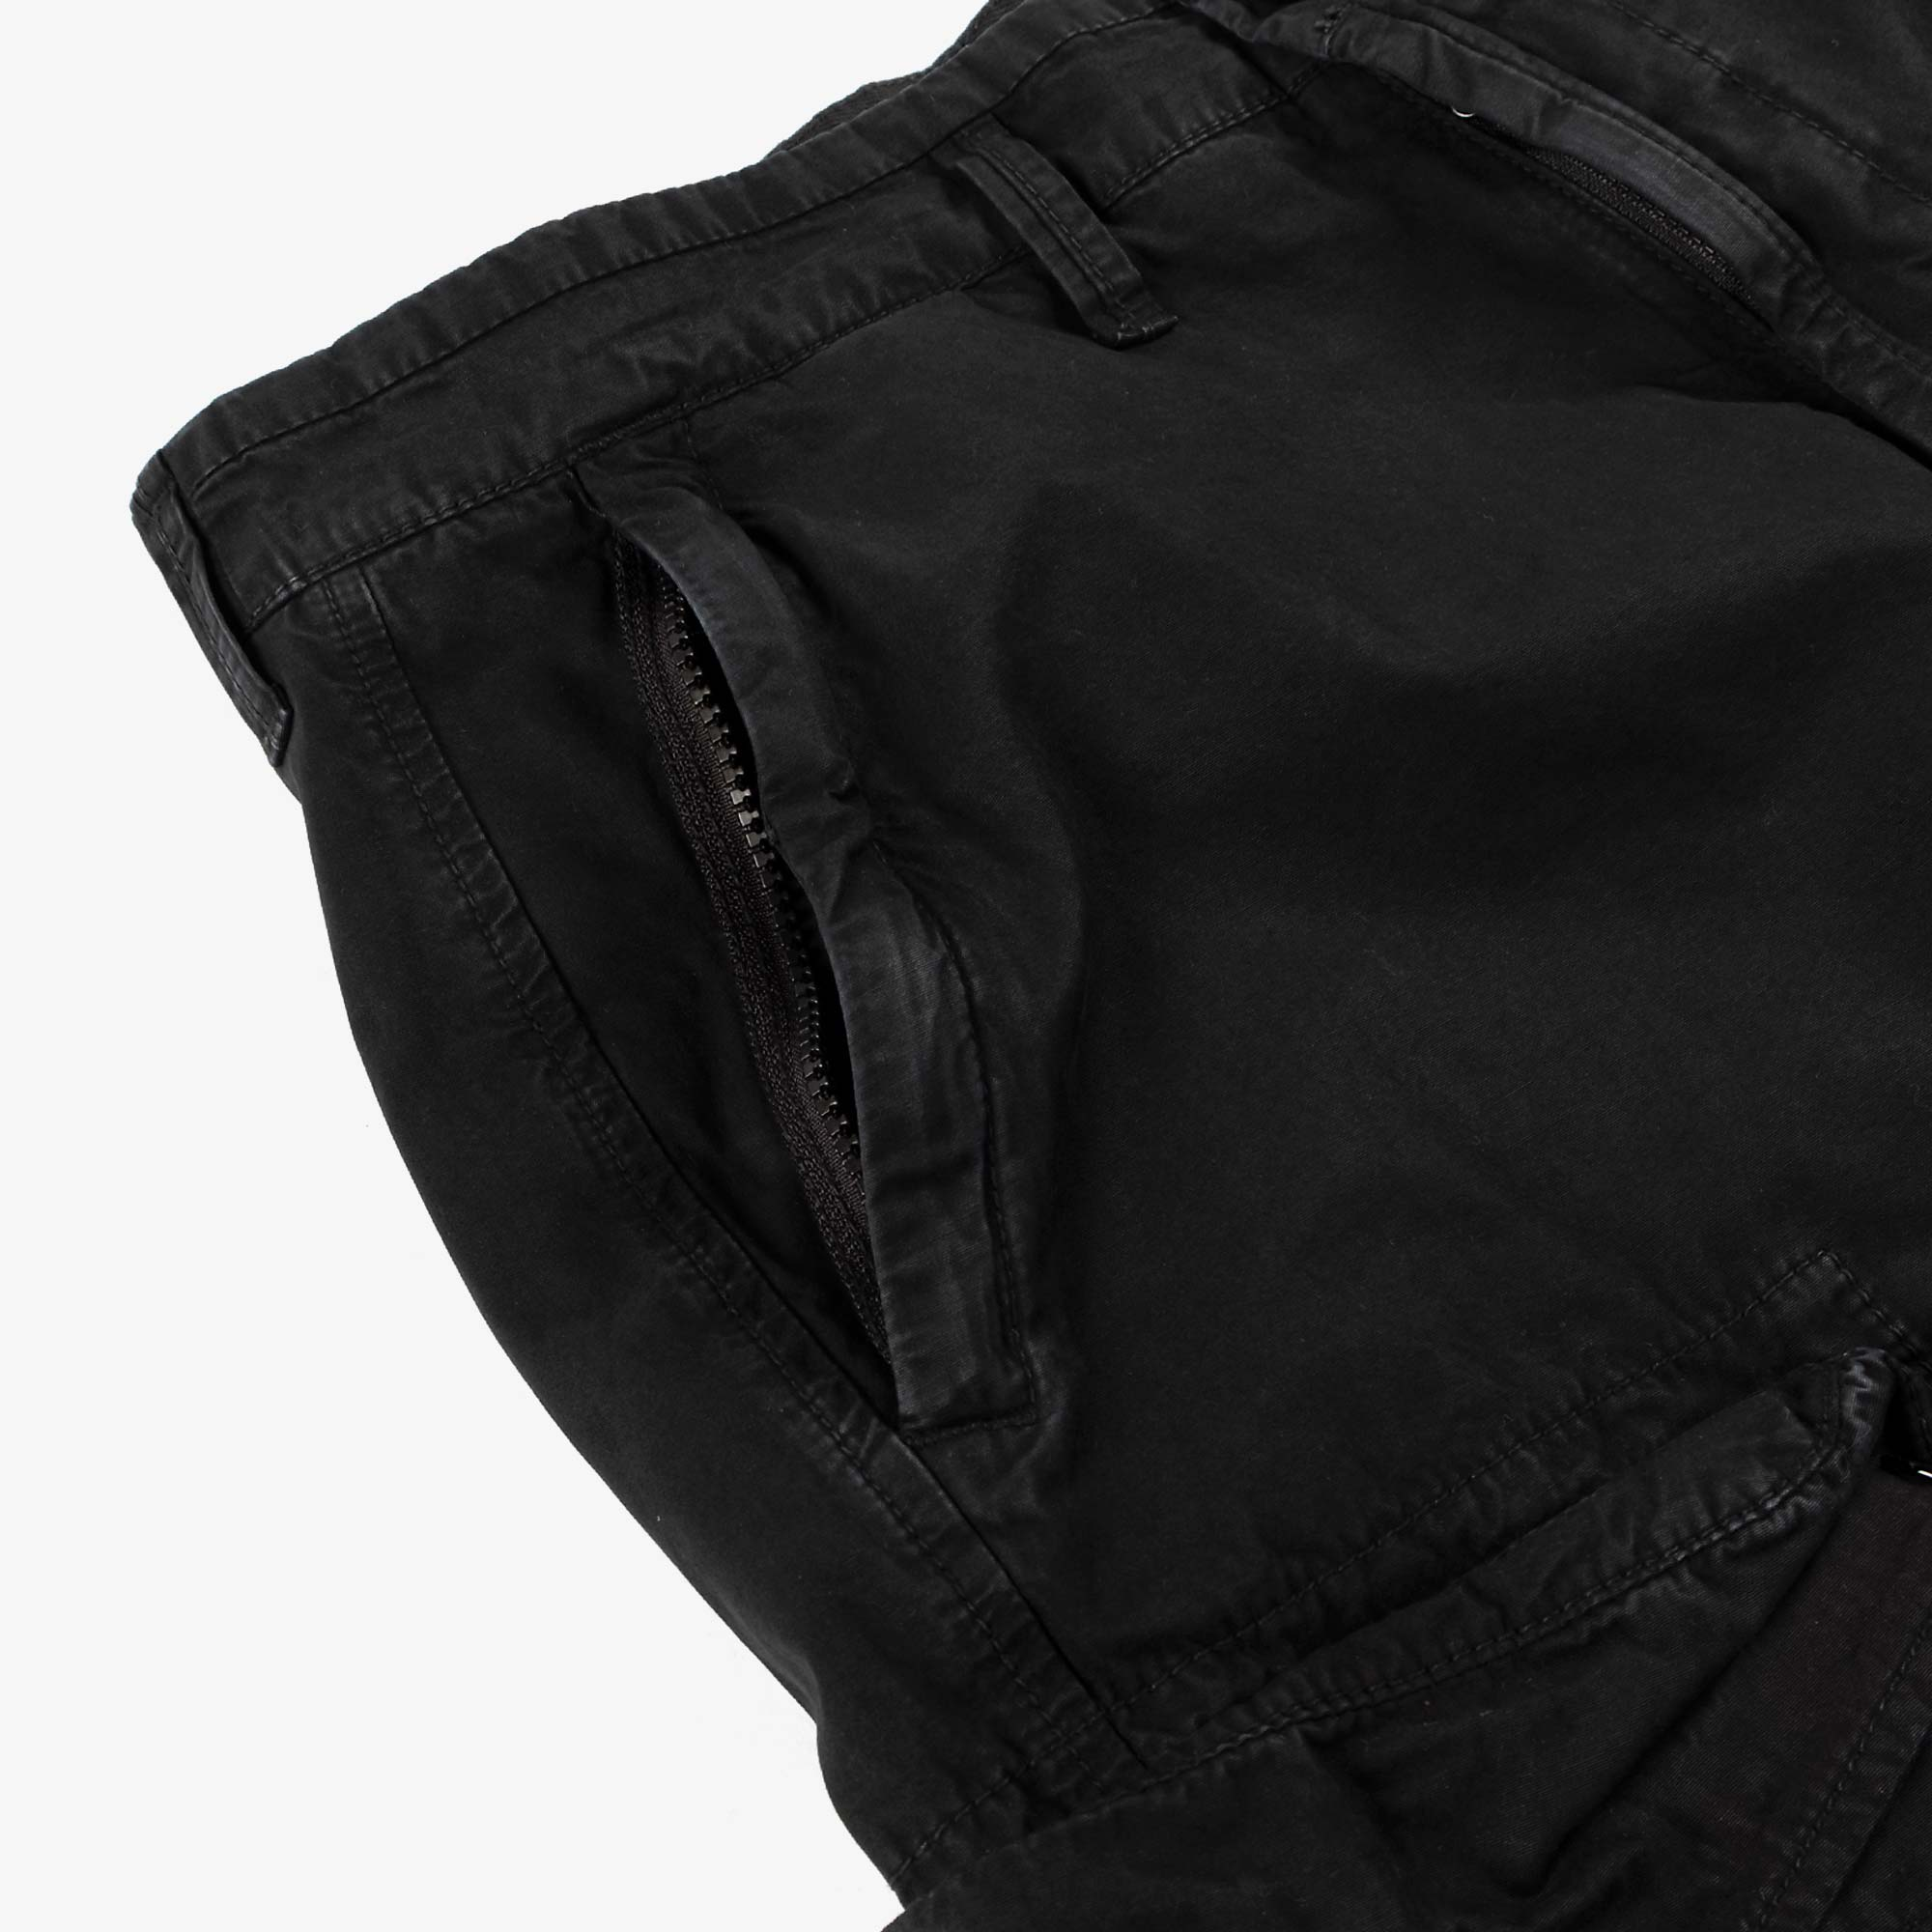 Stone Island T.CO Old Effect Cargo Pant 7415319WA - Black 4